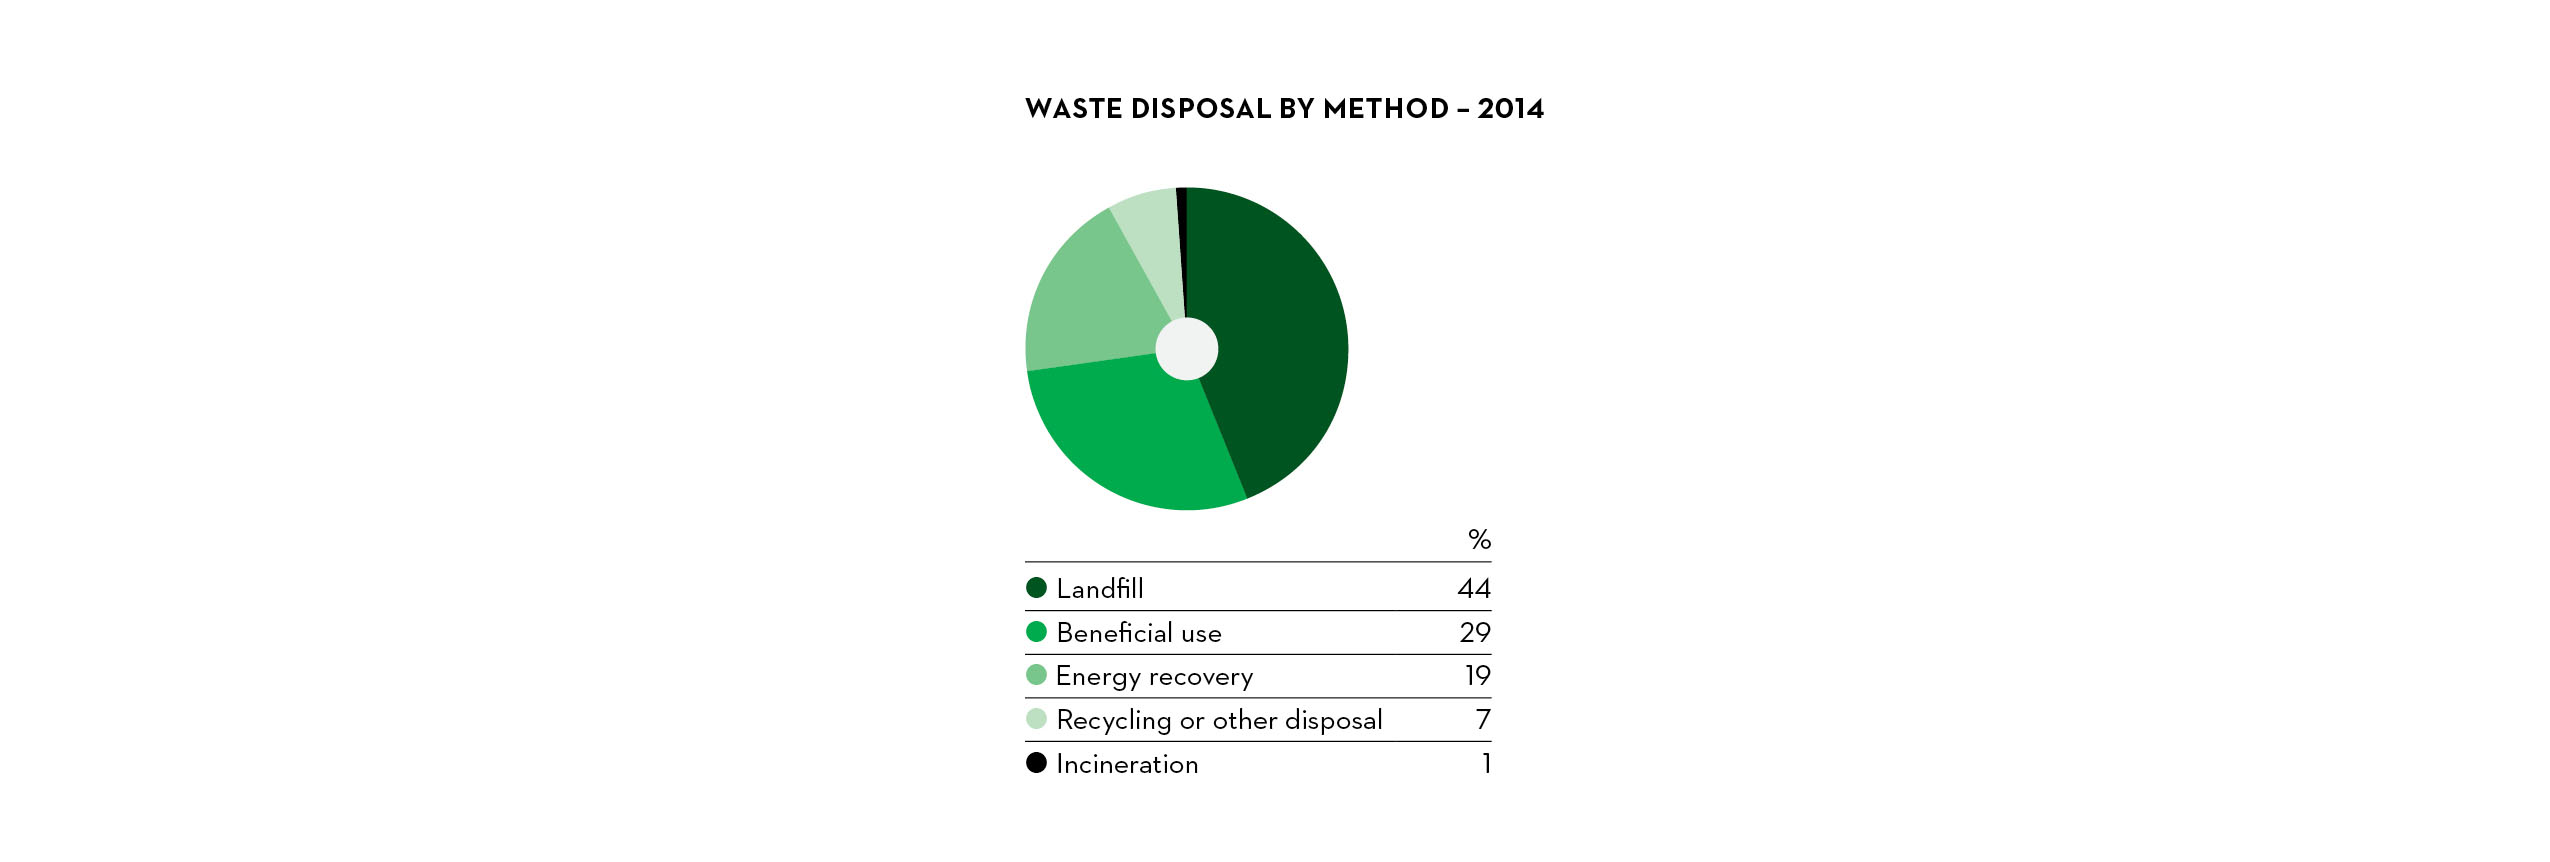 Waste Disposal by Method - 2014